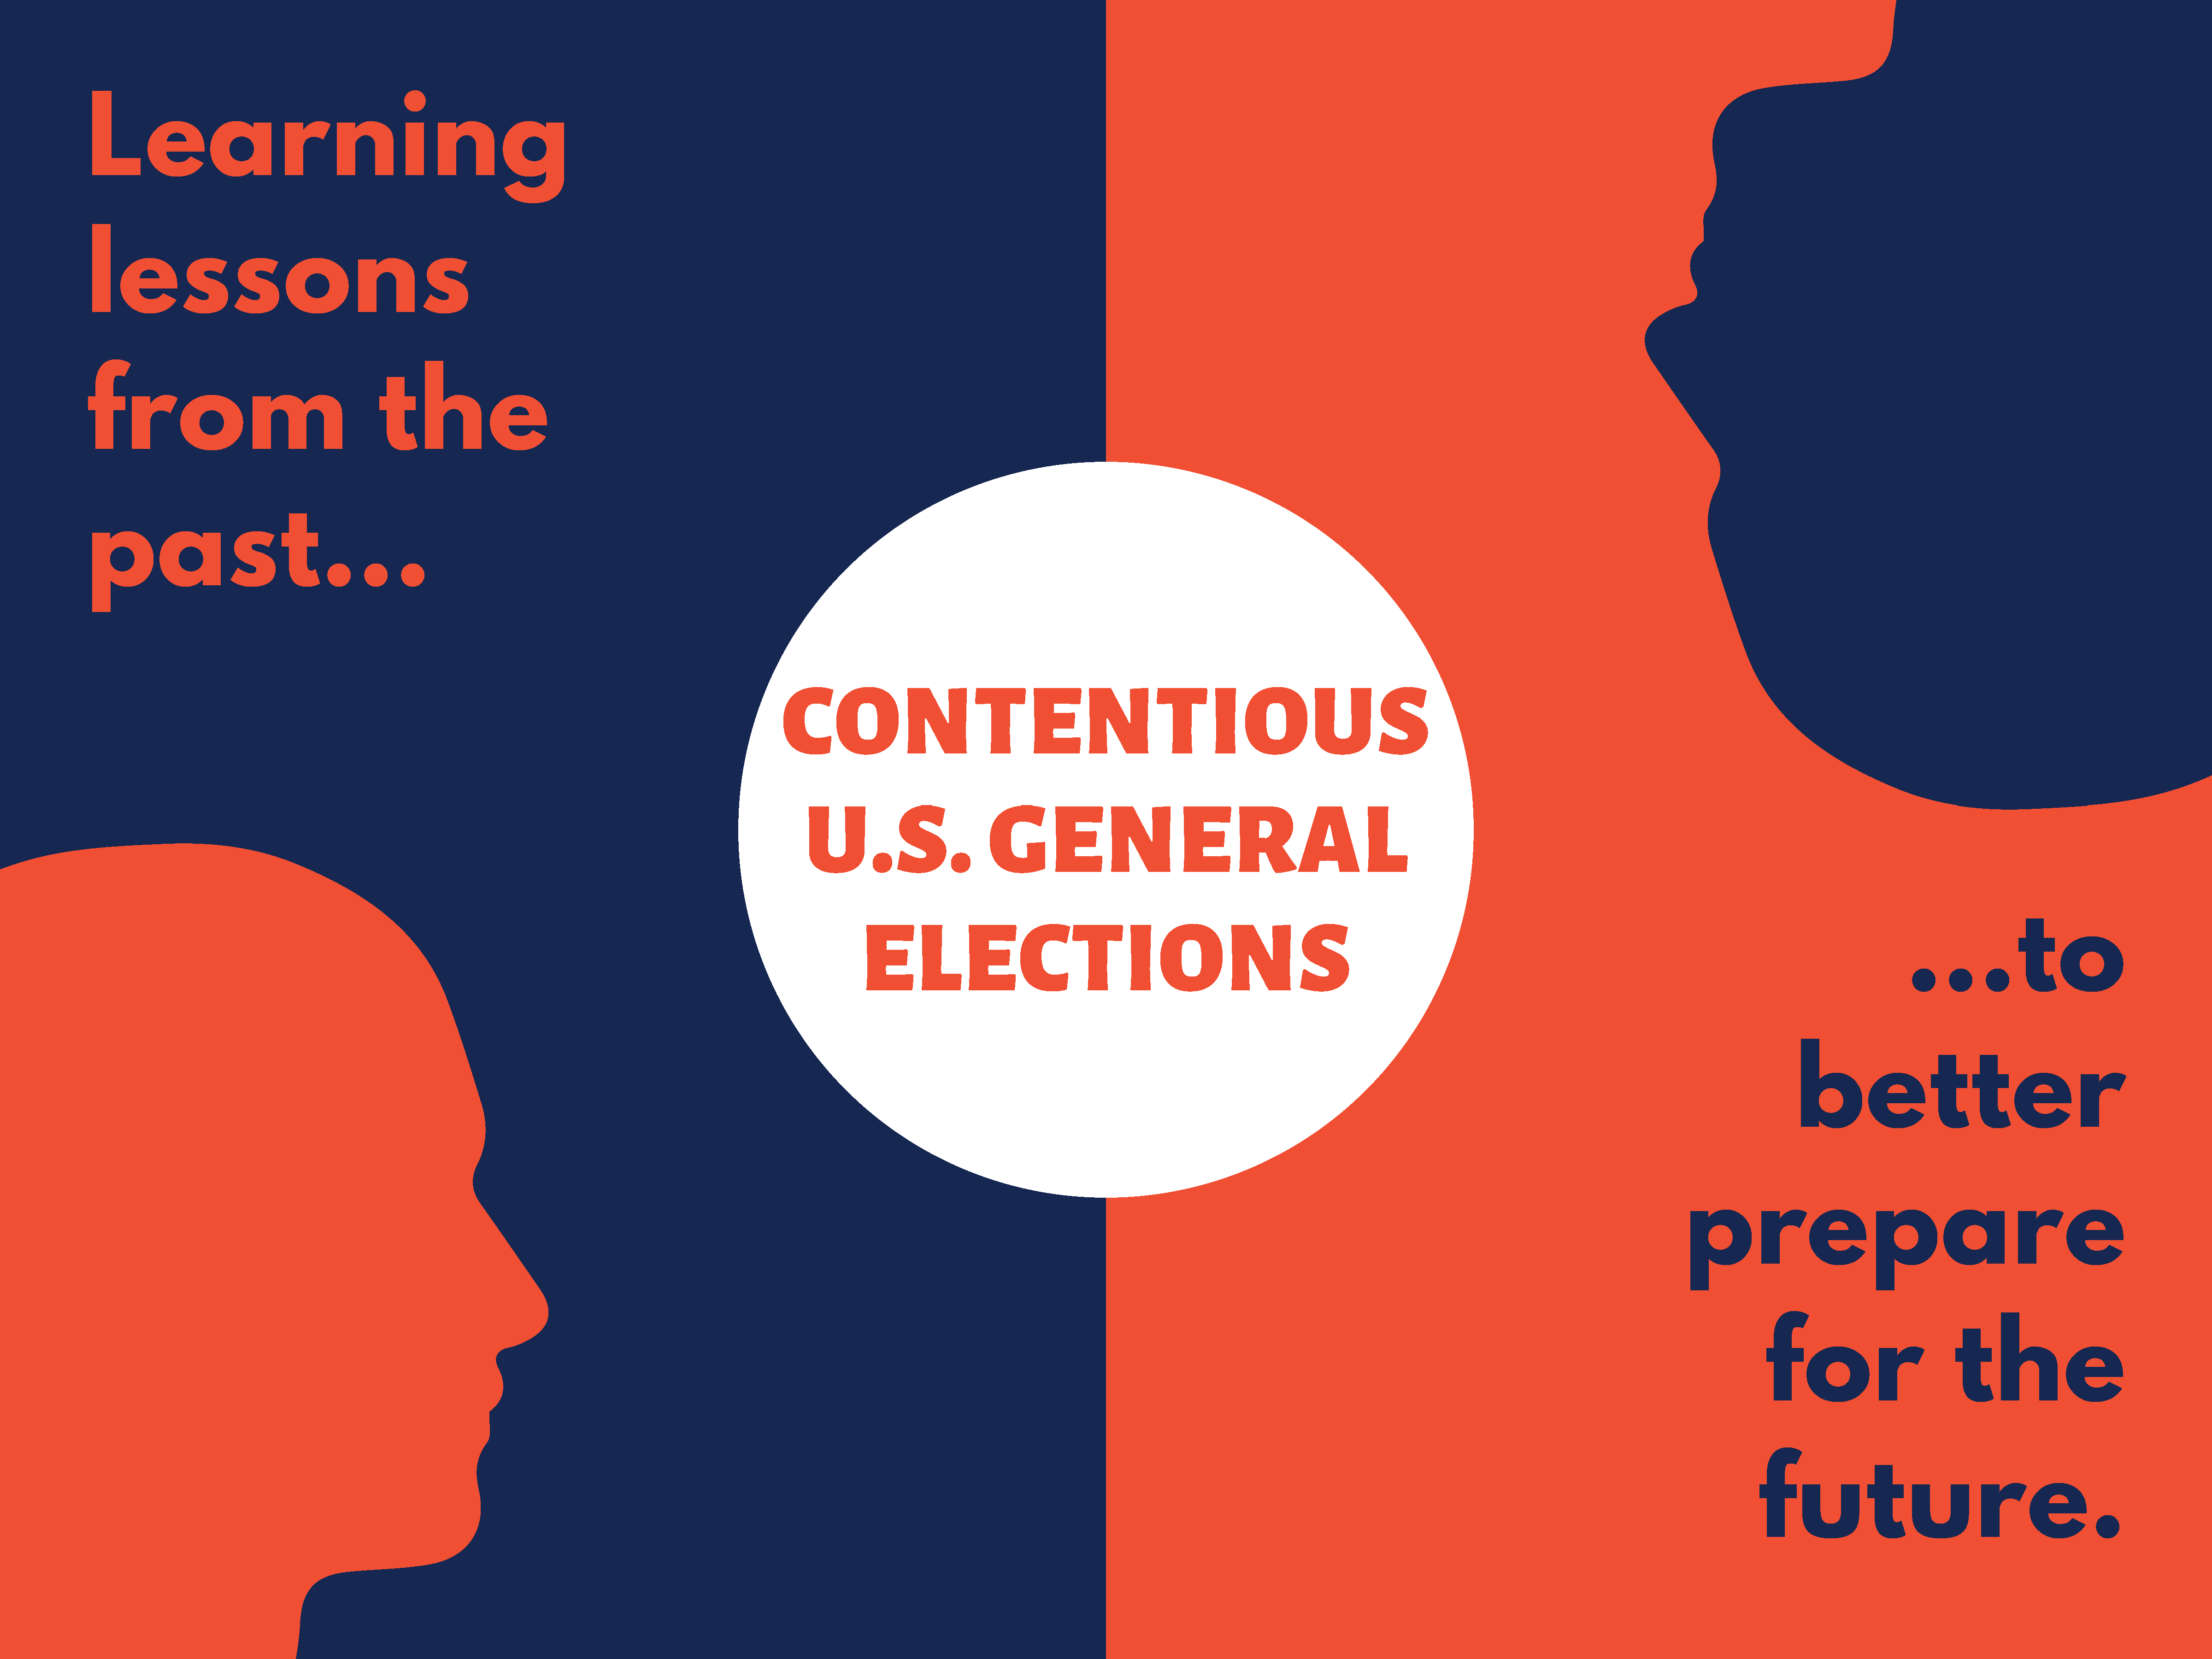 Contentious U.S. General Elections: Learning lesson from the past to better prepare for the future.